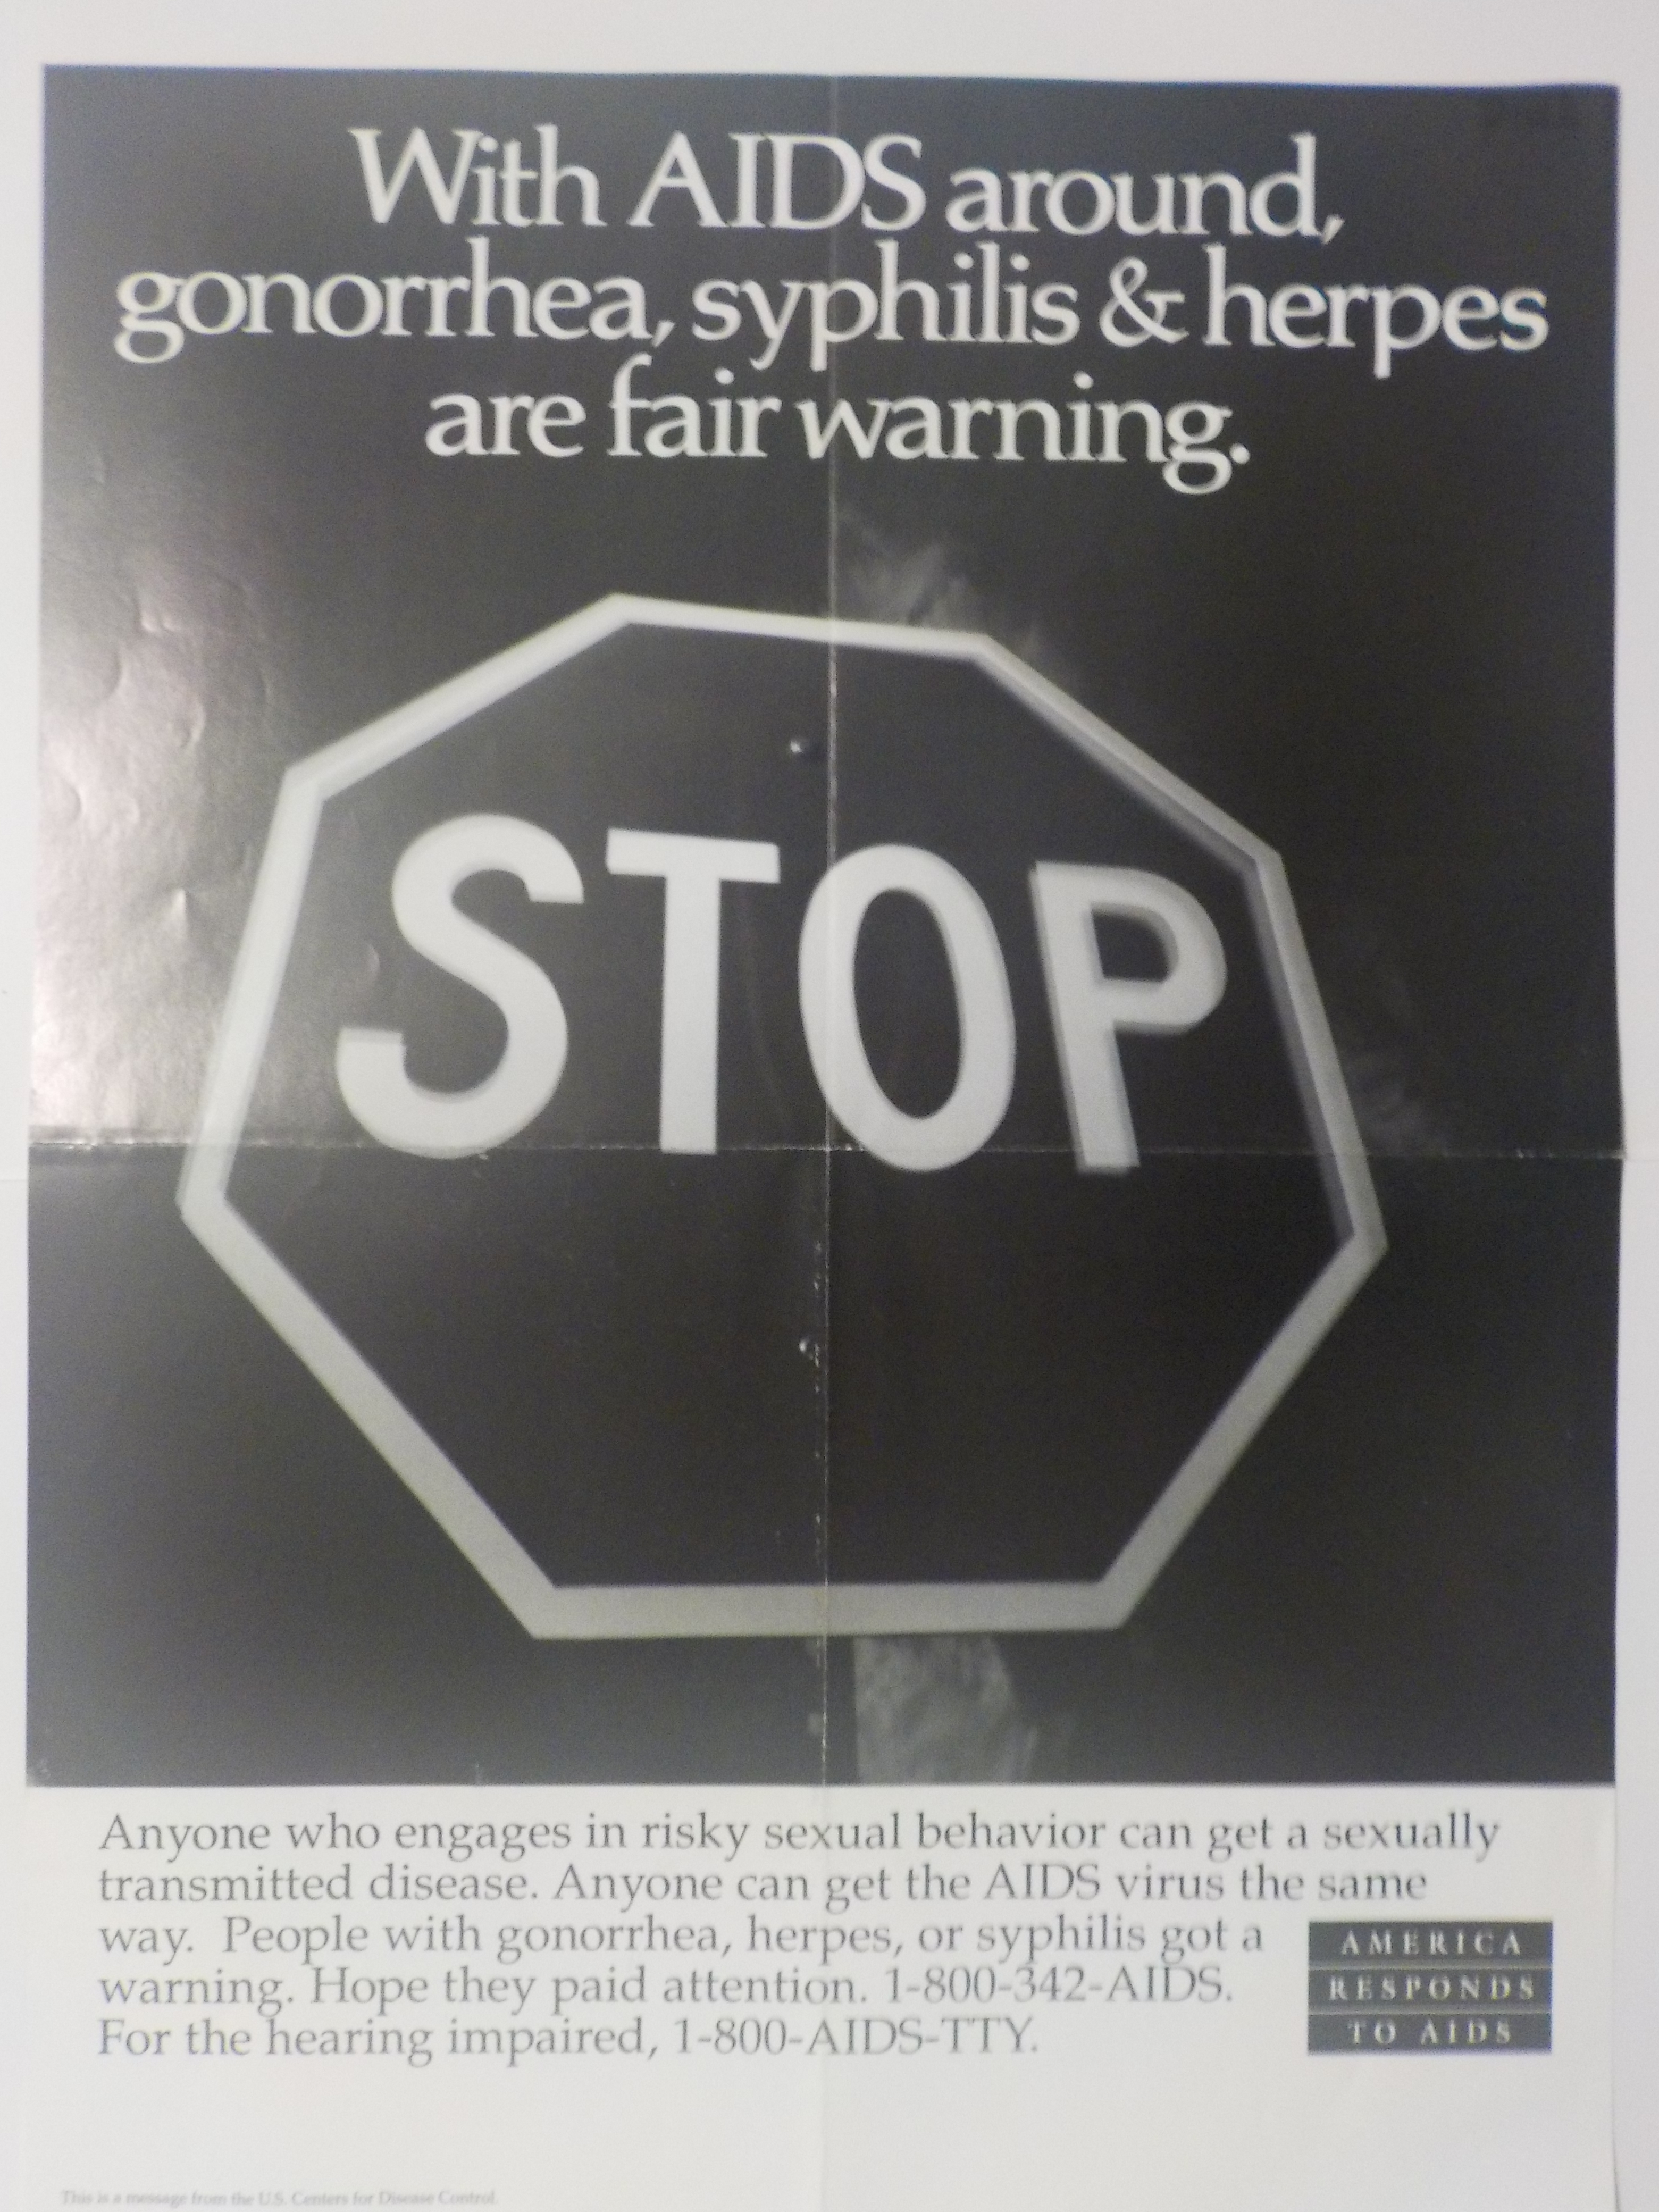 With AIDS around, gonorrhea, syphilis & herpes are fair warning